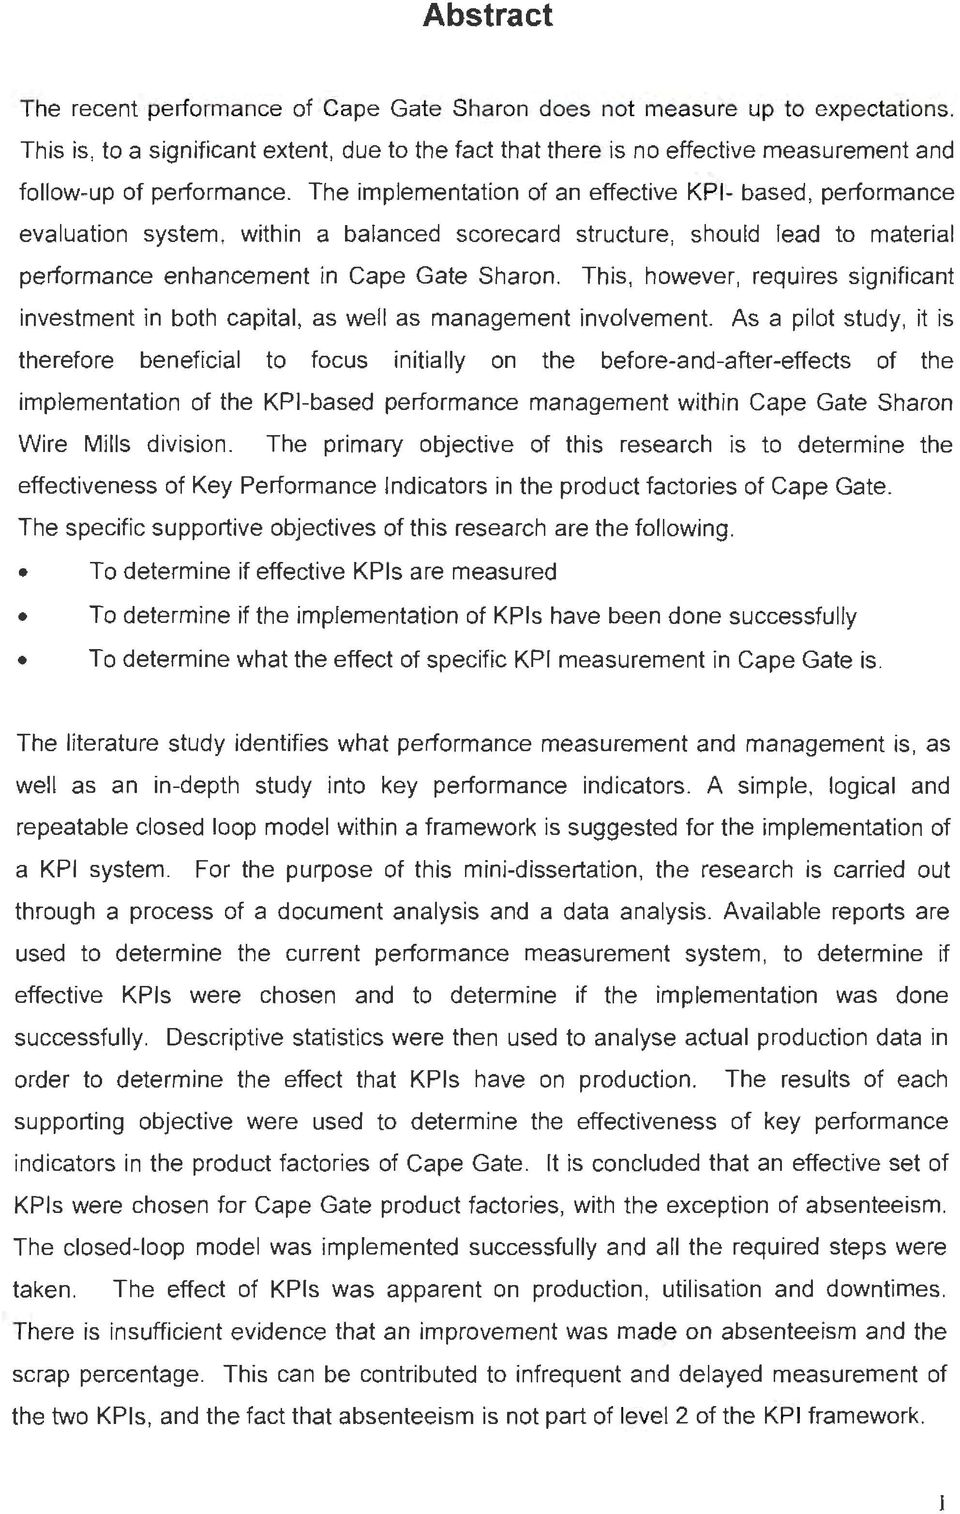 The implementation of an effective KPI- based, performance evaluation system, within a balanced scorecard structure, should lead to material performance enhancement in Cape Gate Sharon.